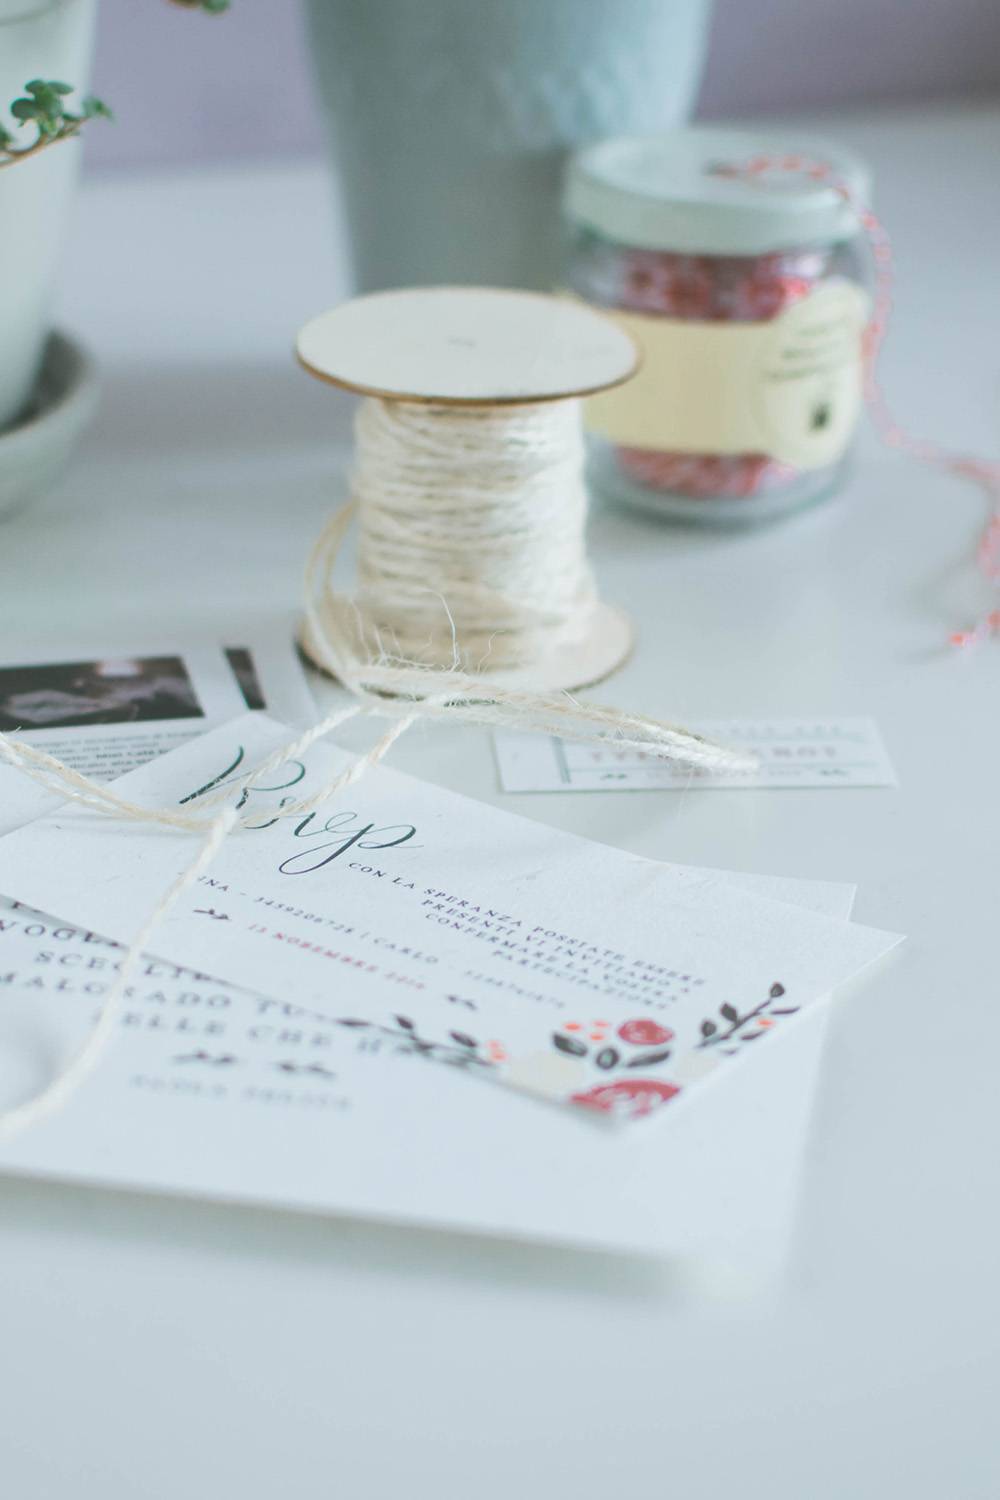 Package Event Stationery Wedding Invitations Designs - Miel Café Design